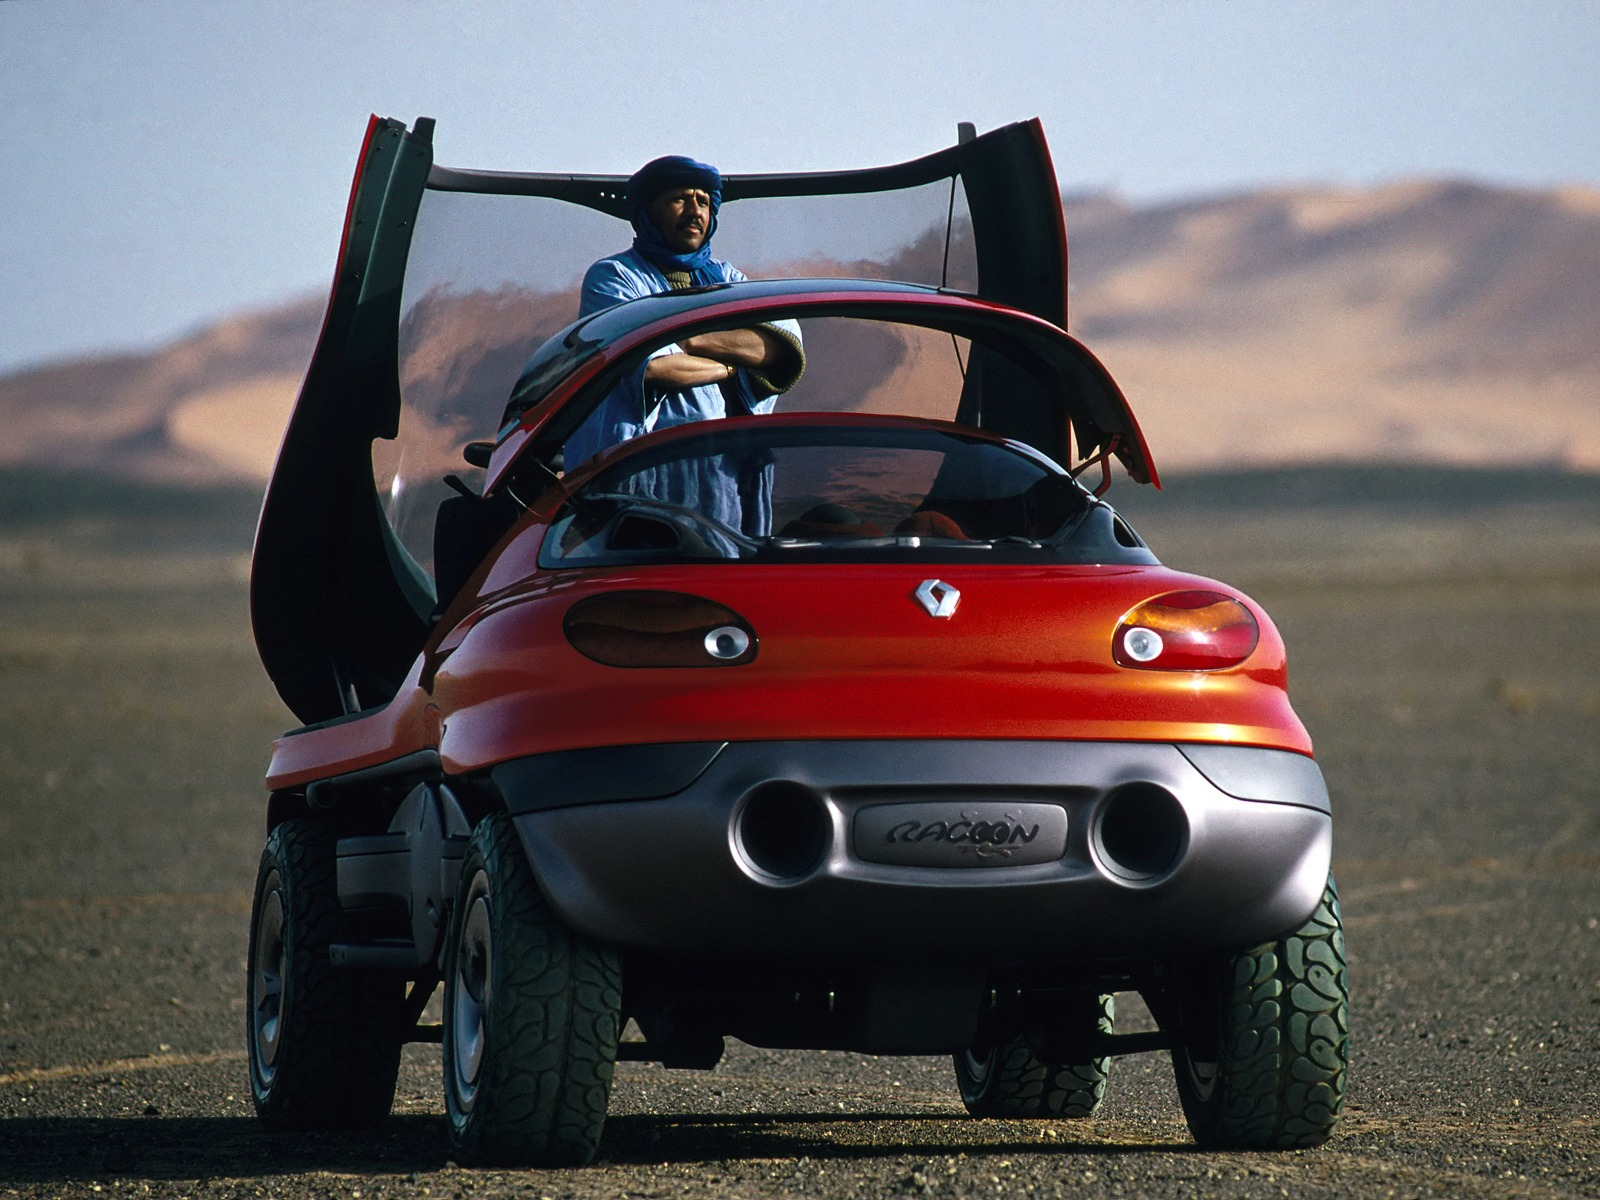 Used Vehicles Near Me >> Renault Racoon Concept (1993) - Old Concept Cars